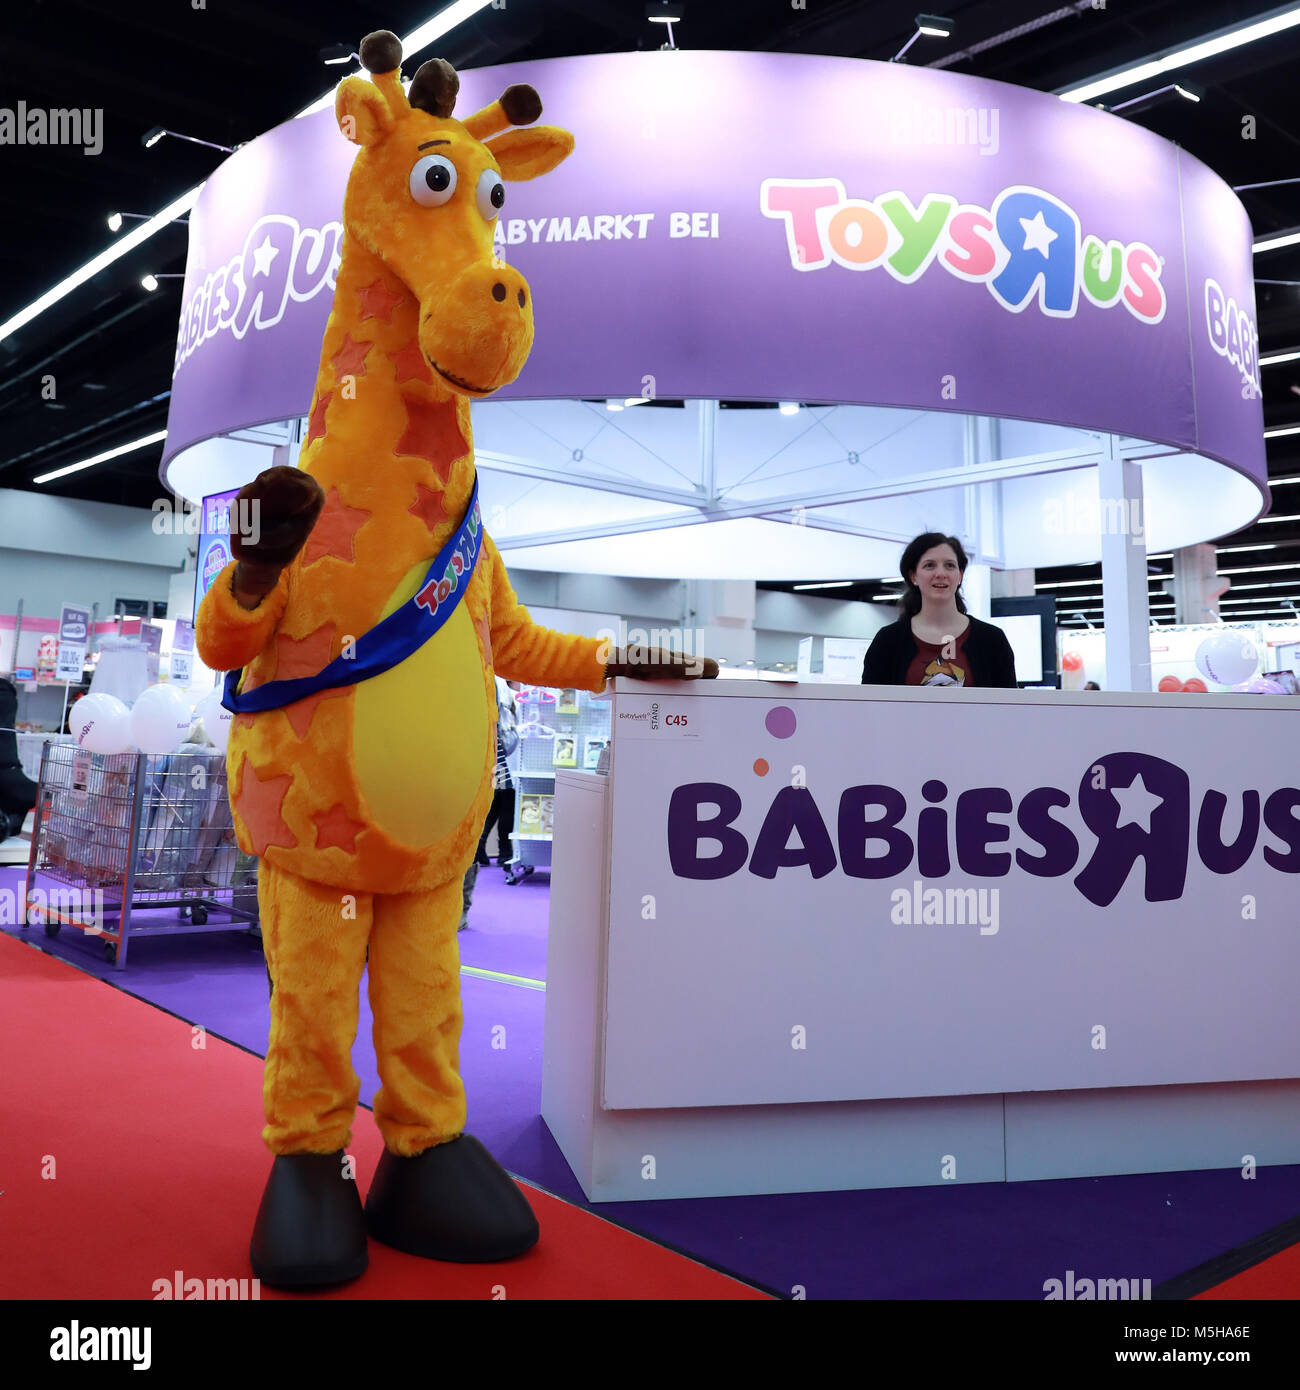 Babywelt Frankfurt Attended Booth Stock Photos Attended Booth Stock Images Alamy